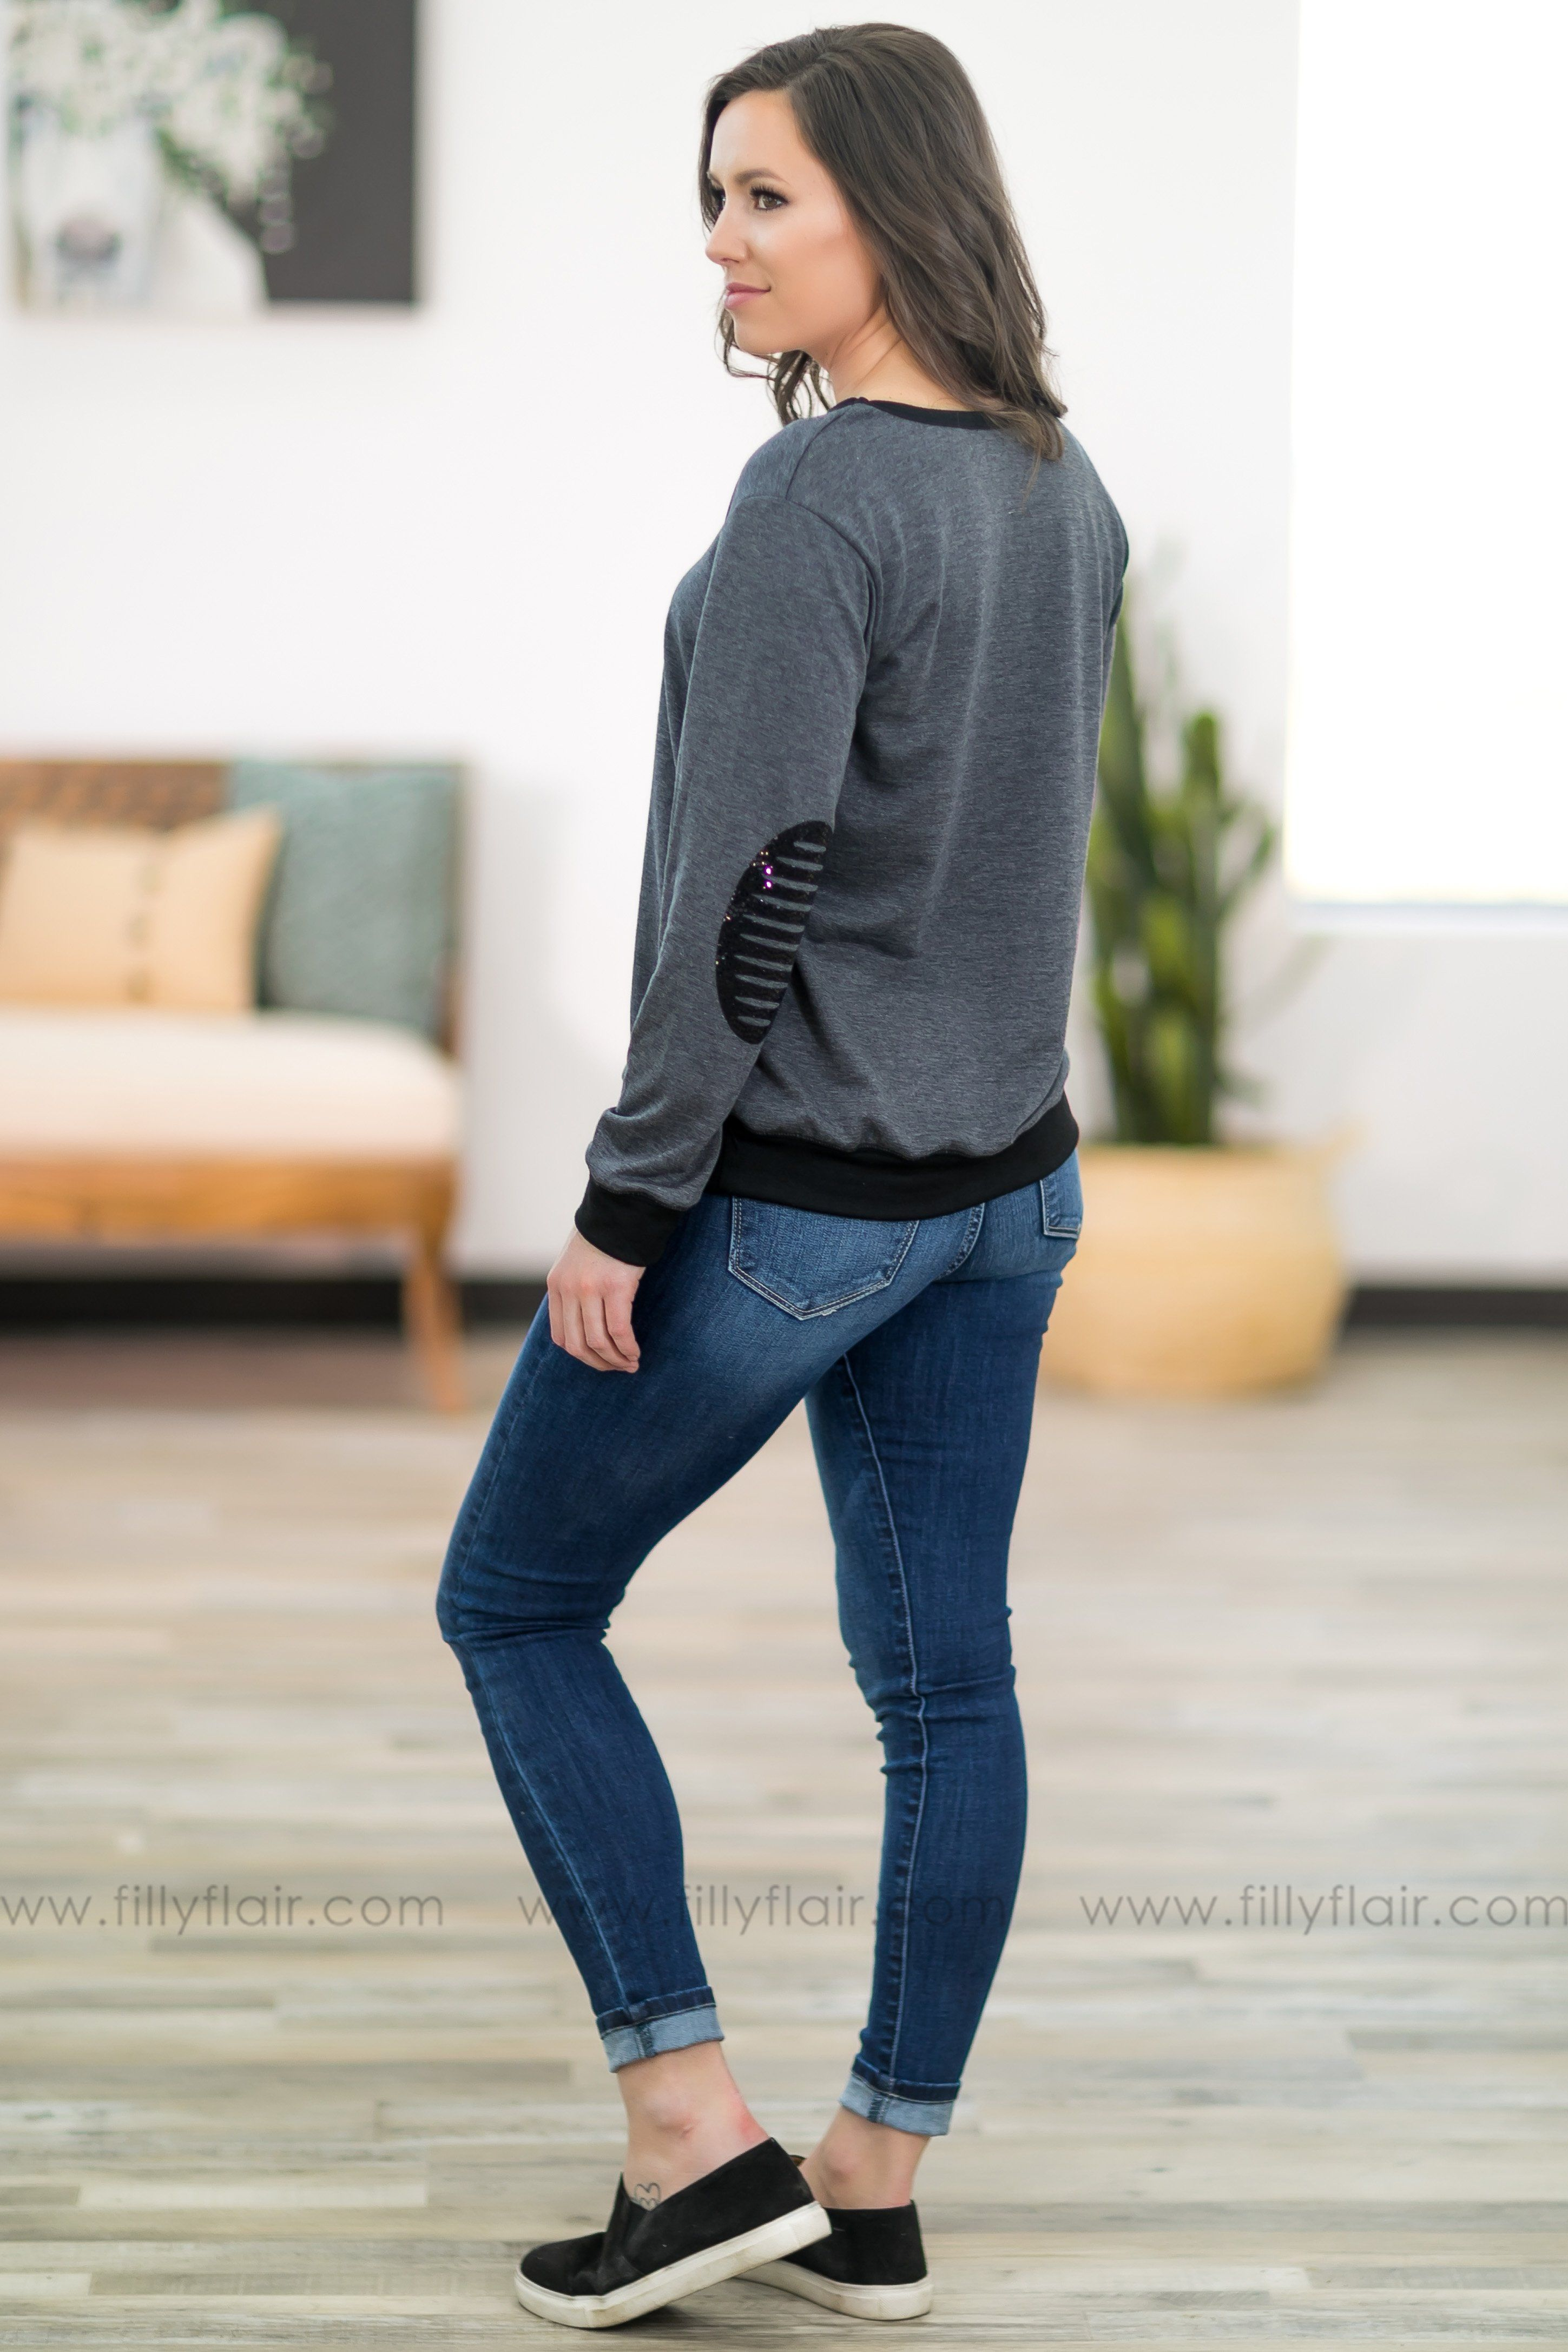 Keep it Simple Black Trim Long Sleeve Elbow Patch Top in Charcoal - Filly Flair